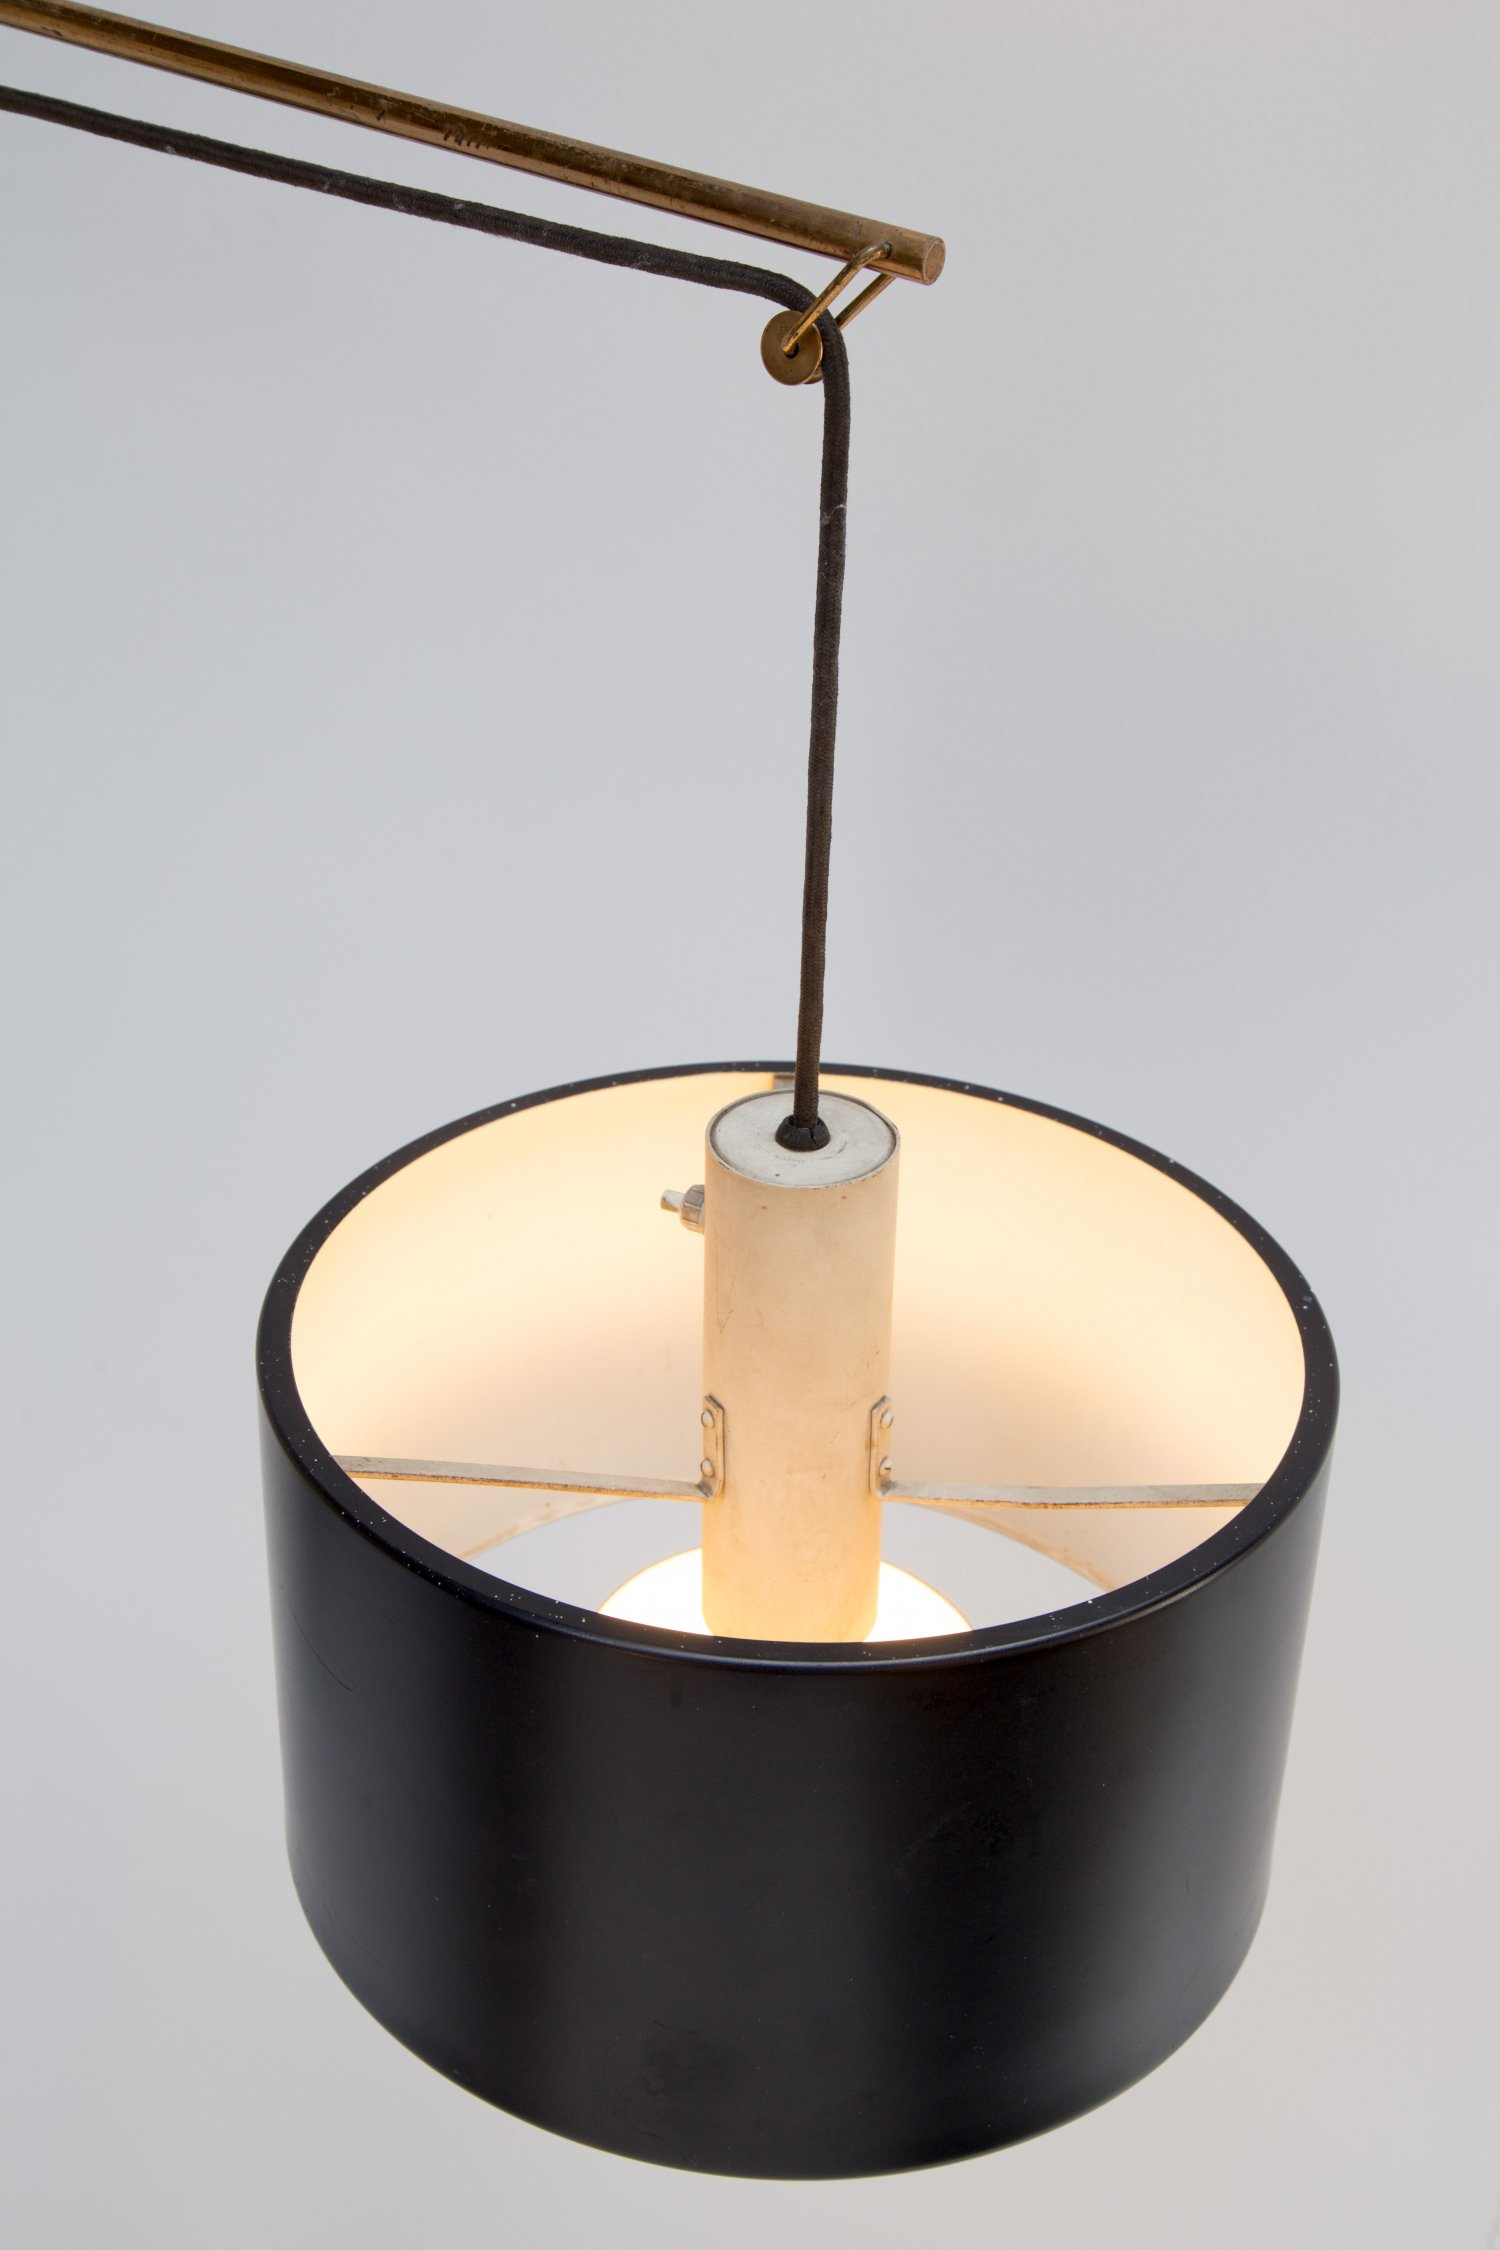 Stilnovo wall lamp by Gaetano Sciolari